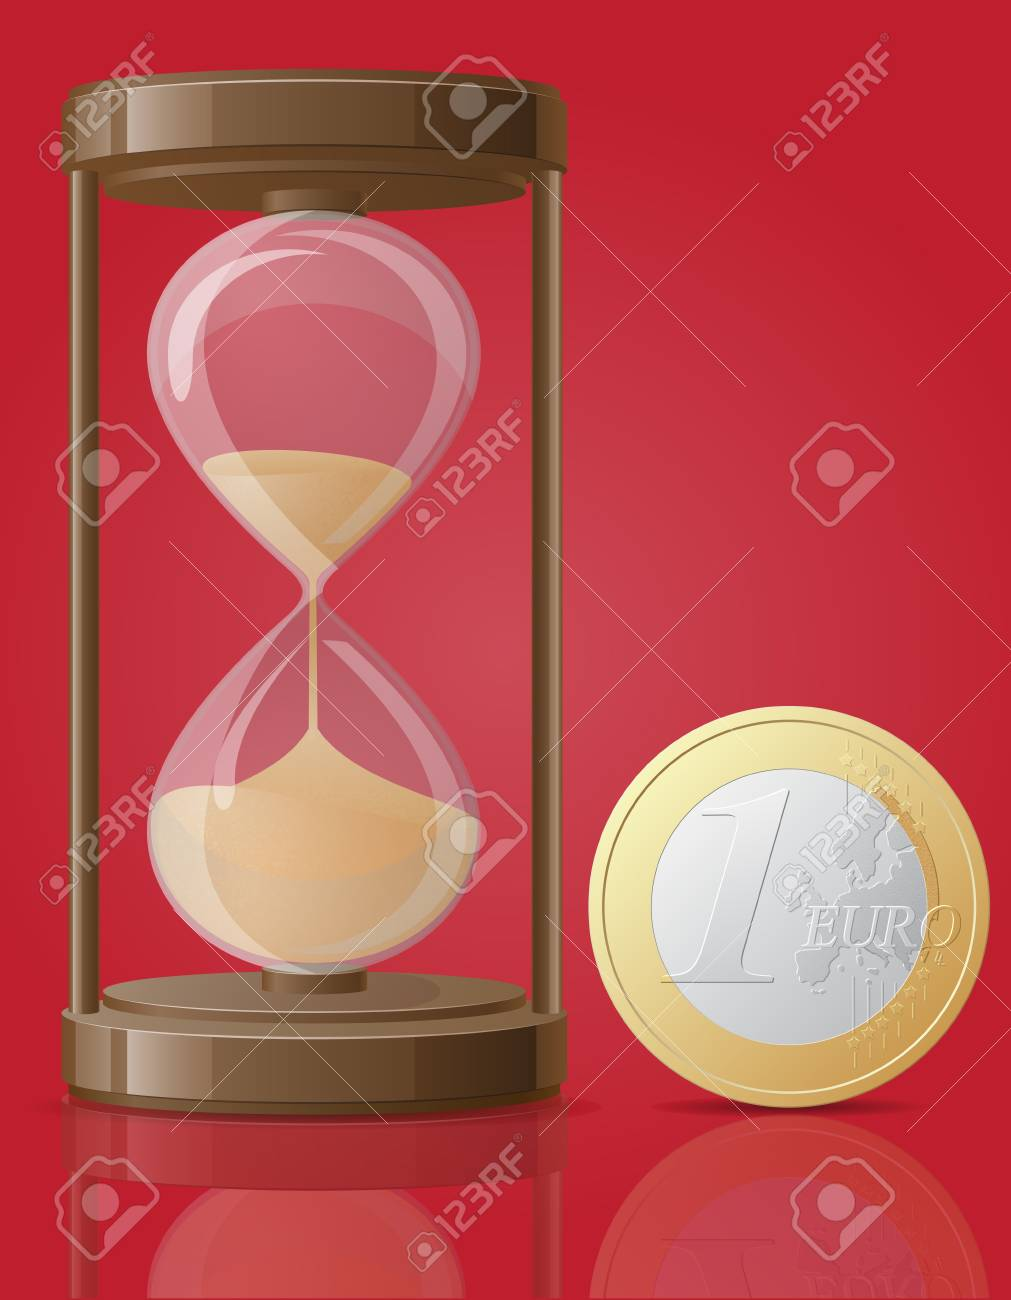 old retro hourglass and one coin euro vector illustration isolated on red background Stock Photo - 23869063